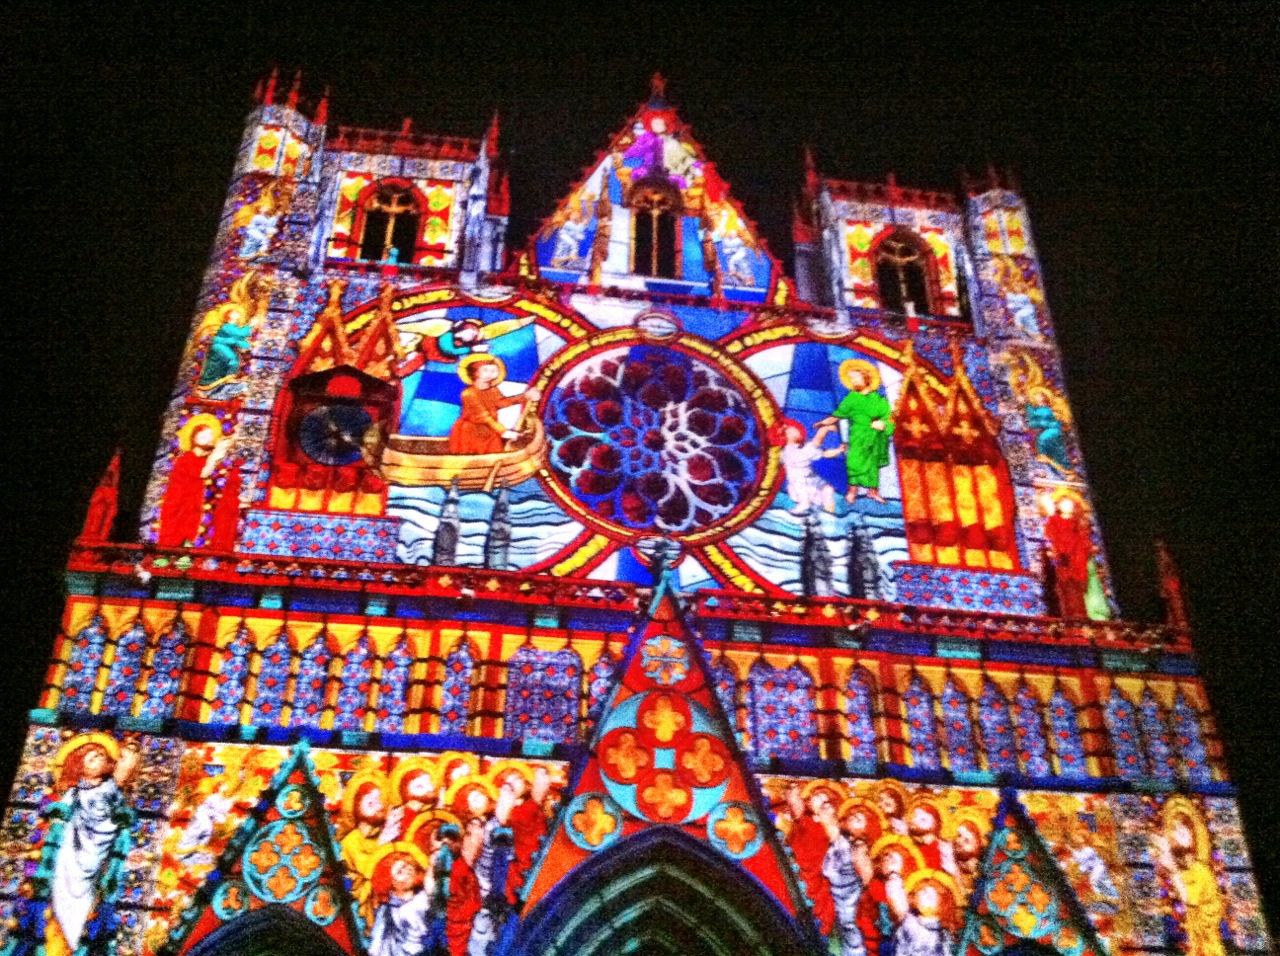 Lyon Festival Of Light - cathedral